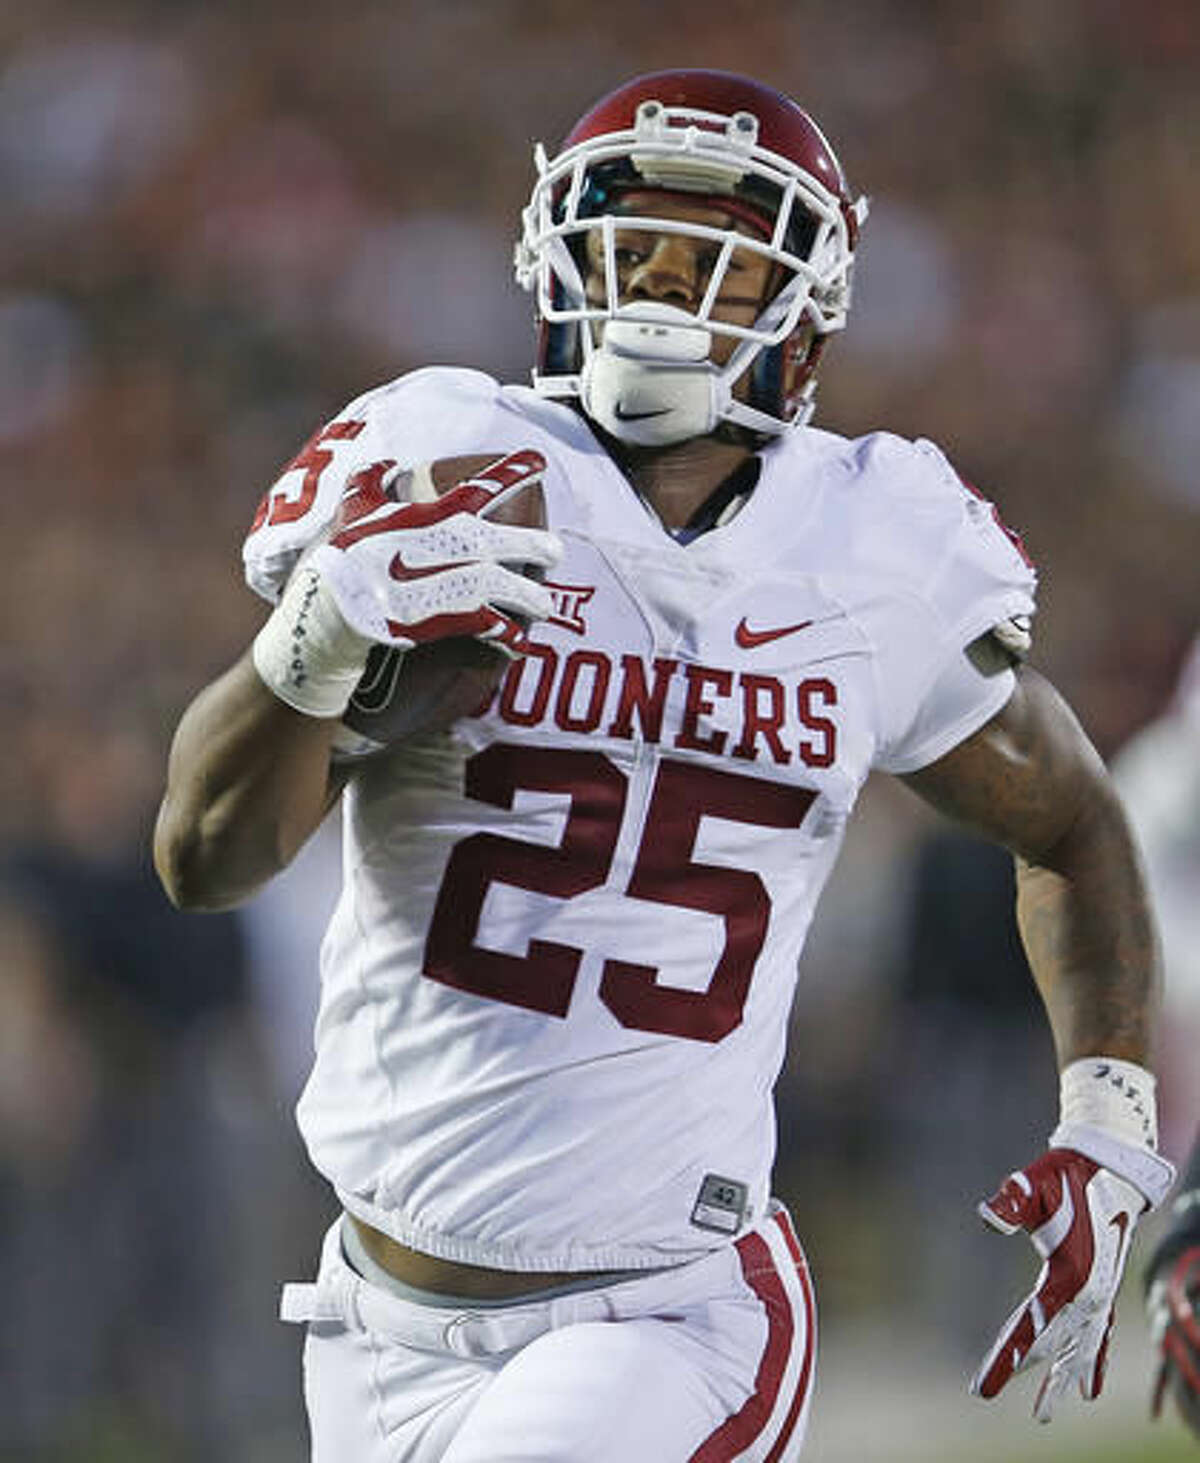 Oklahoma's Joe Mixon (25) runs into the end zone to score a touchdown during an NCAA college football game against Texas Tech, Saturday, Oct. 22, 2016, in Lubbock, Texas. (Brad Tollefson /Lubbock Avalanche-Journal via AP)